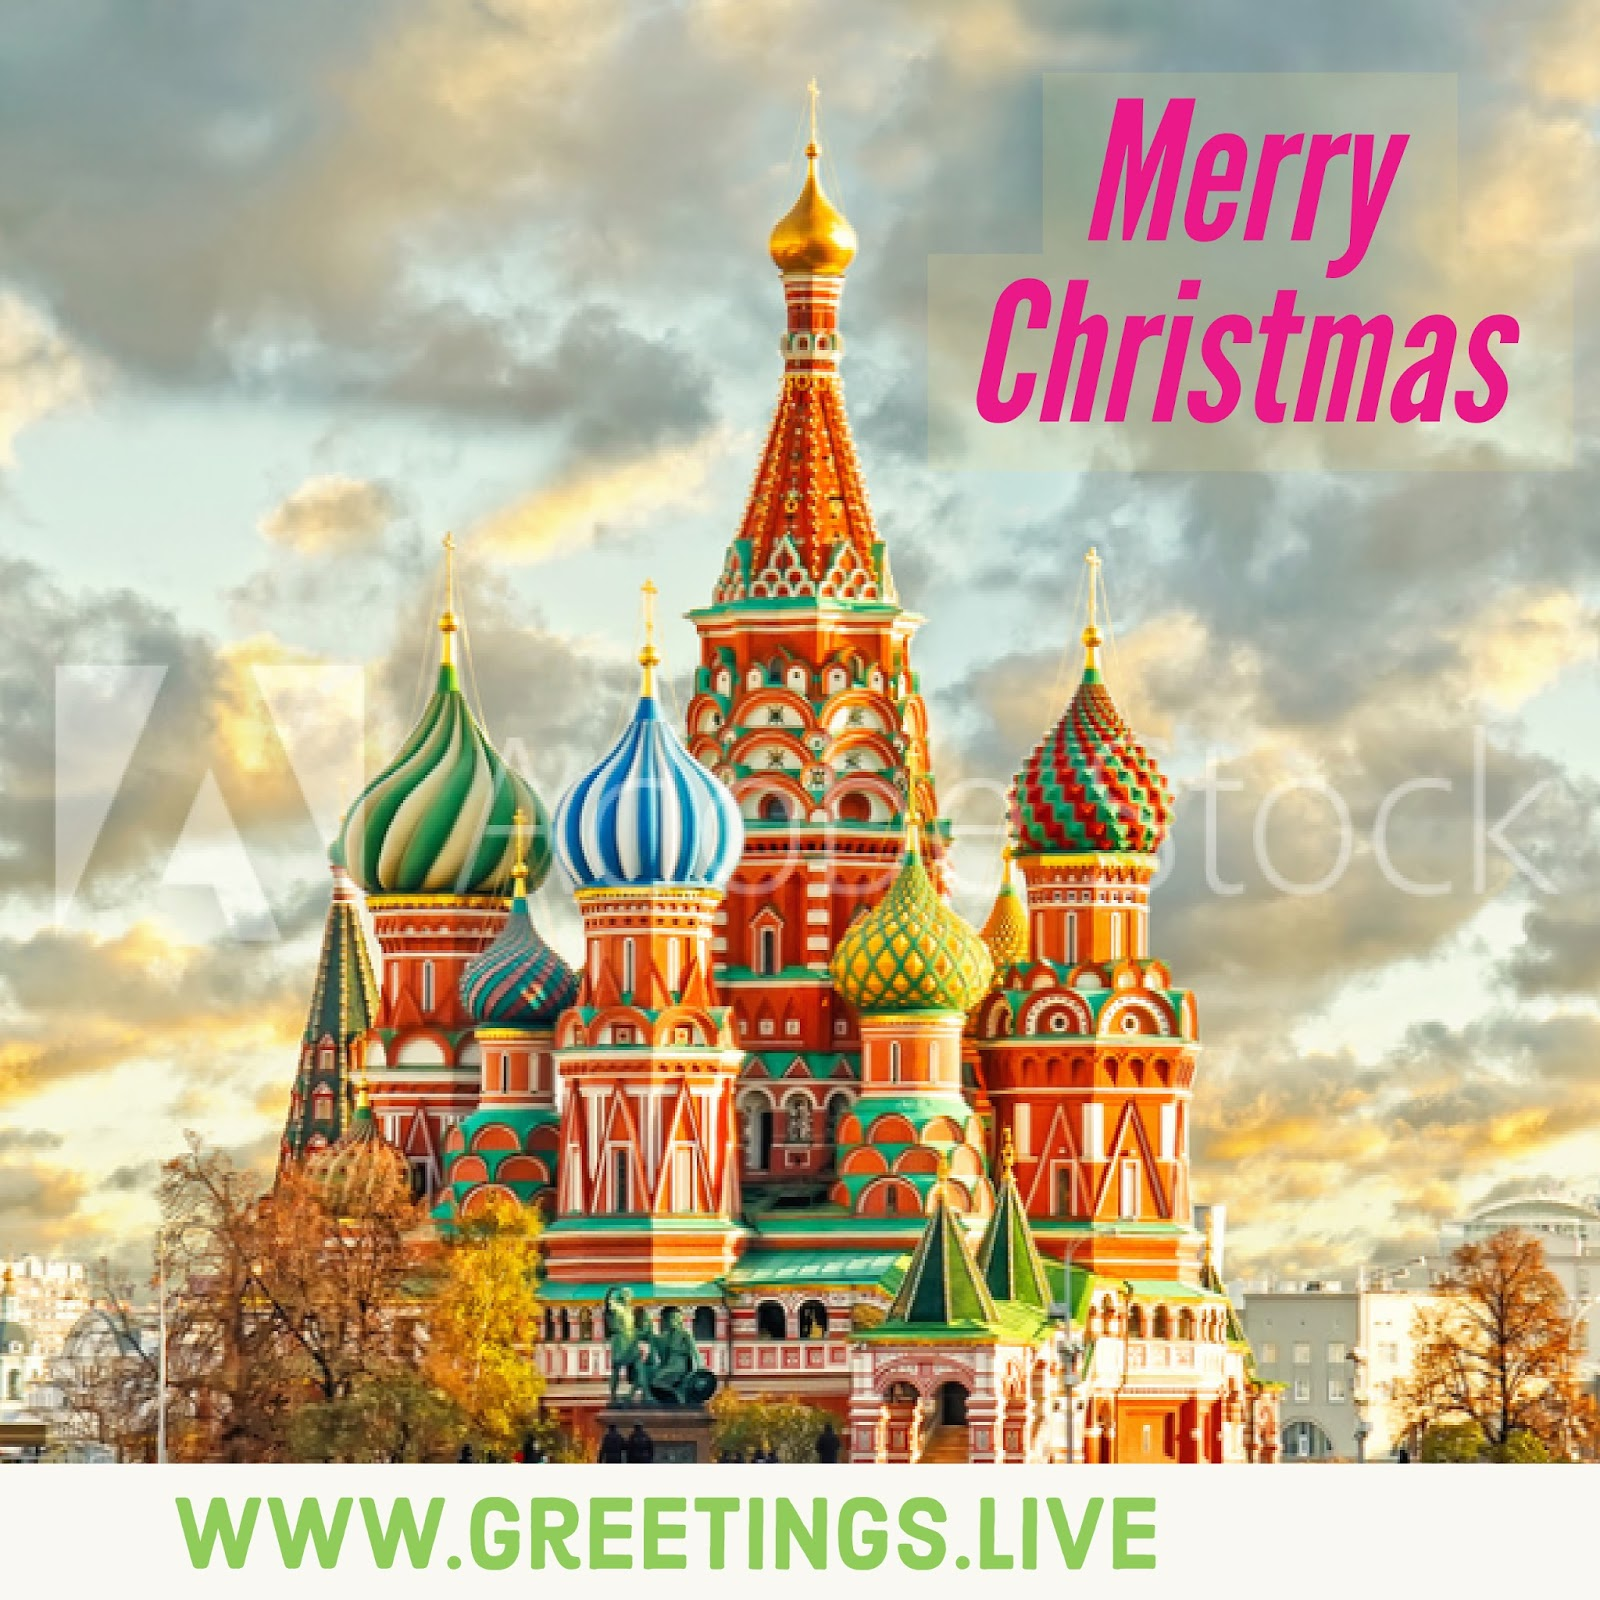 Greetingsve hd images love smile birthday wishes free download christmas greetings in russian theme kristyandbryce Image collections